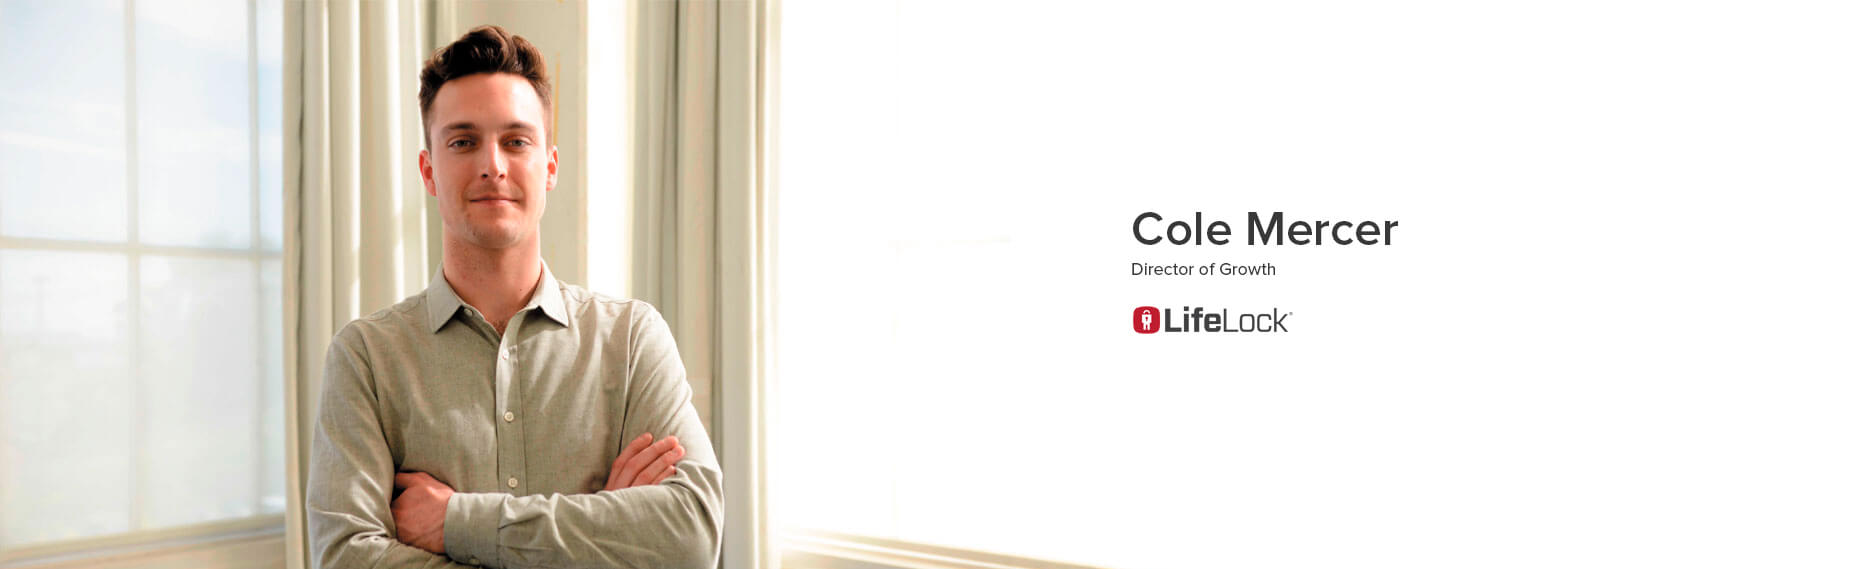 Cole Mercer, Director of Growth at LifeLock